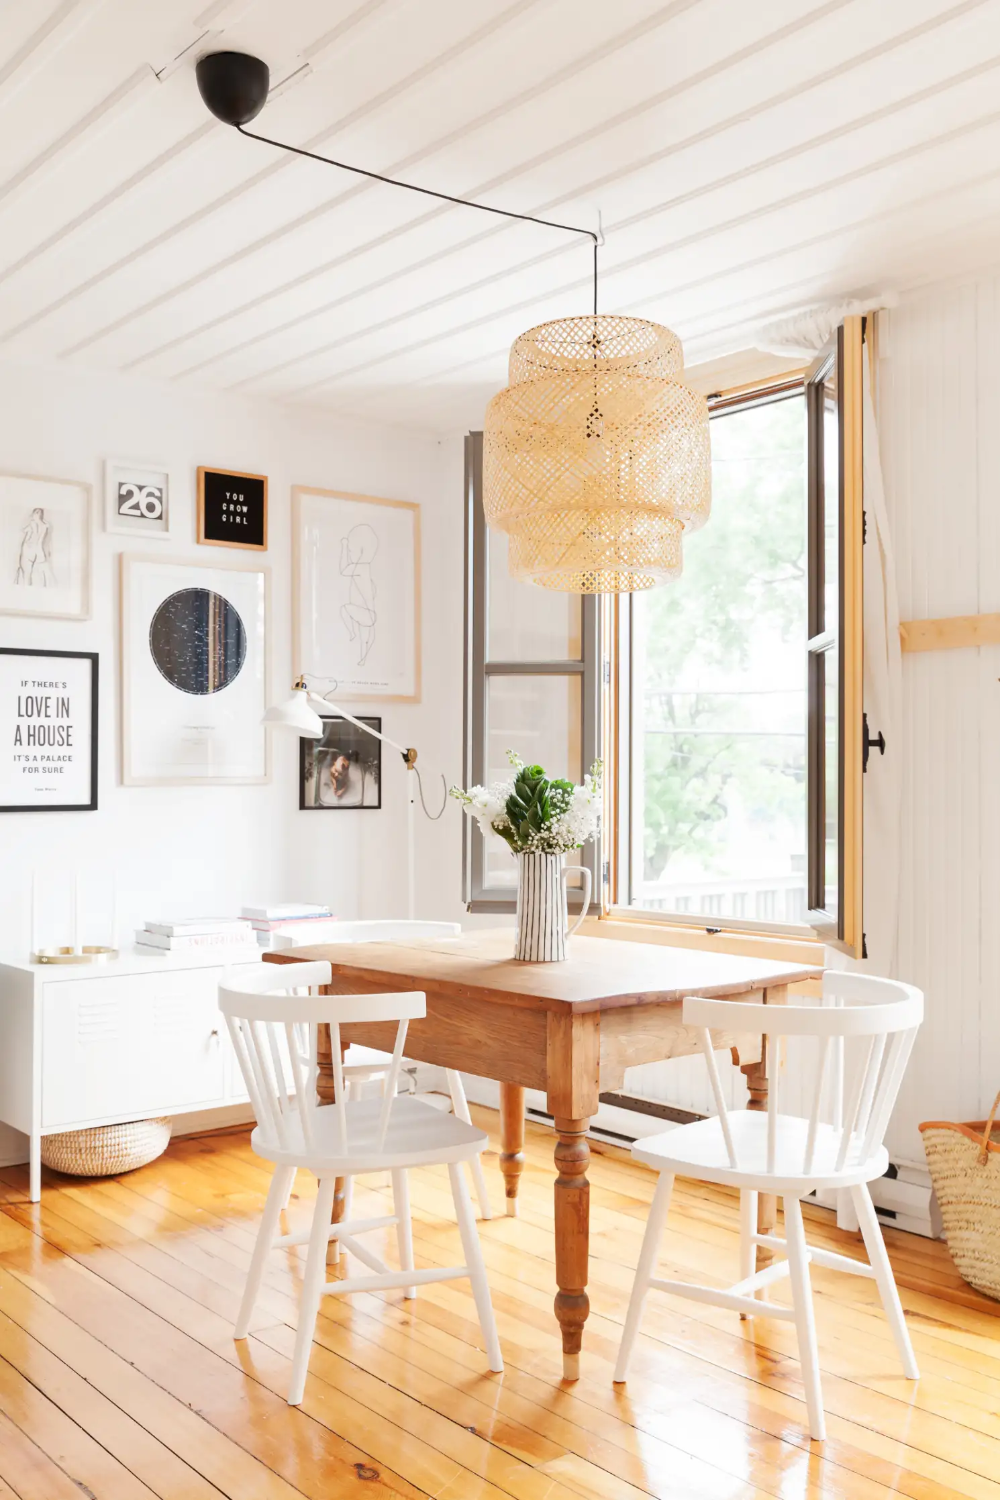 A Minimal Scandinavian Inspired Studio Is Especially Serene In 2020 Minimalist Room Apartment Dining Room Farmhouse Dining Room Table